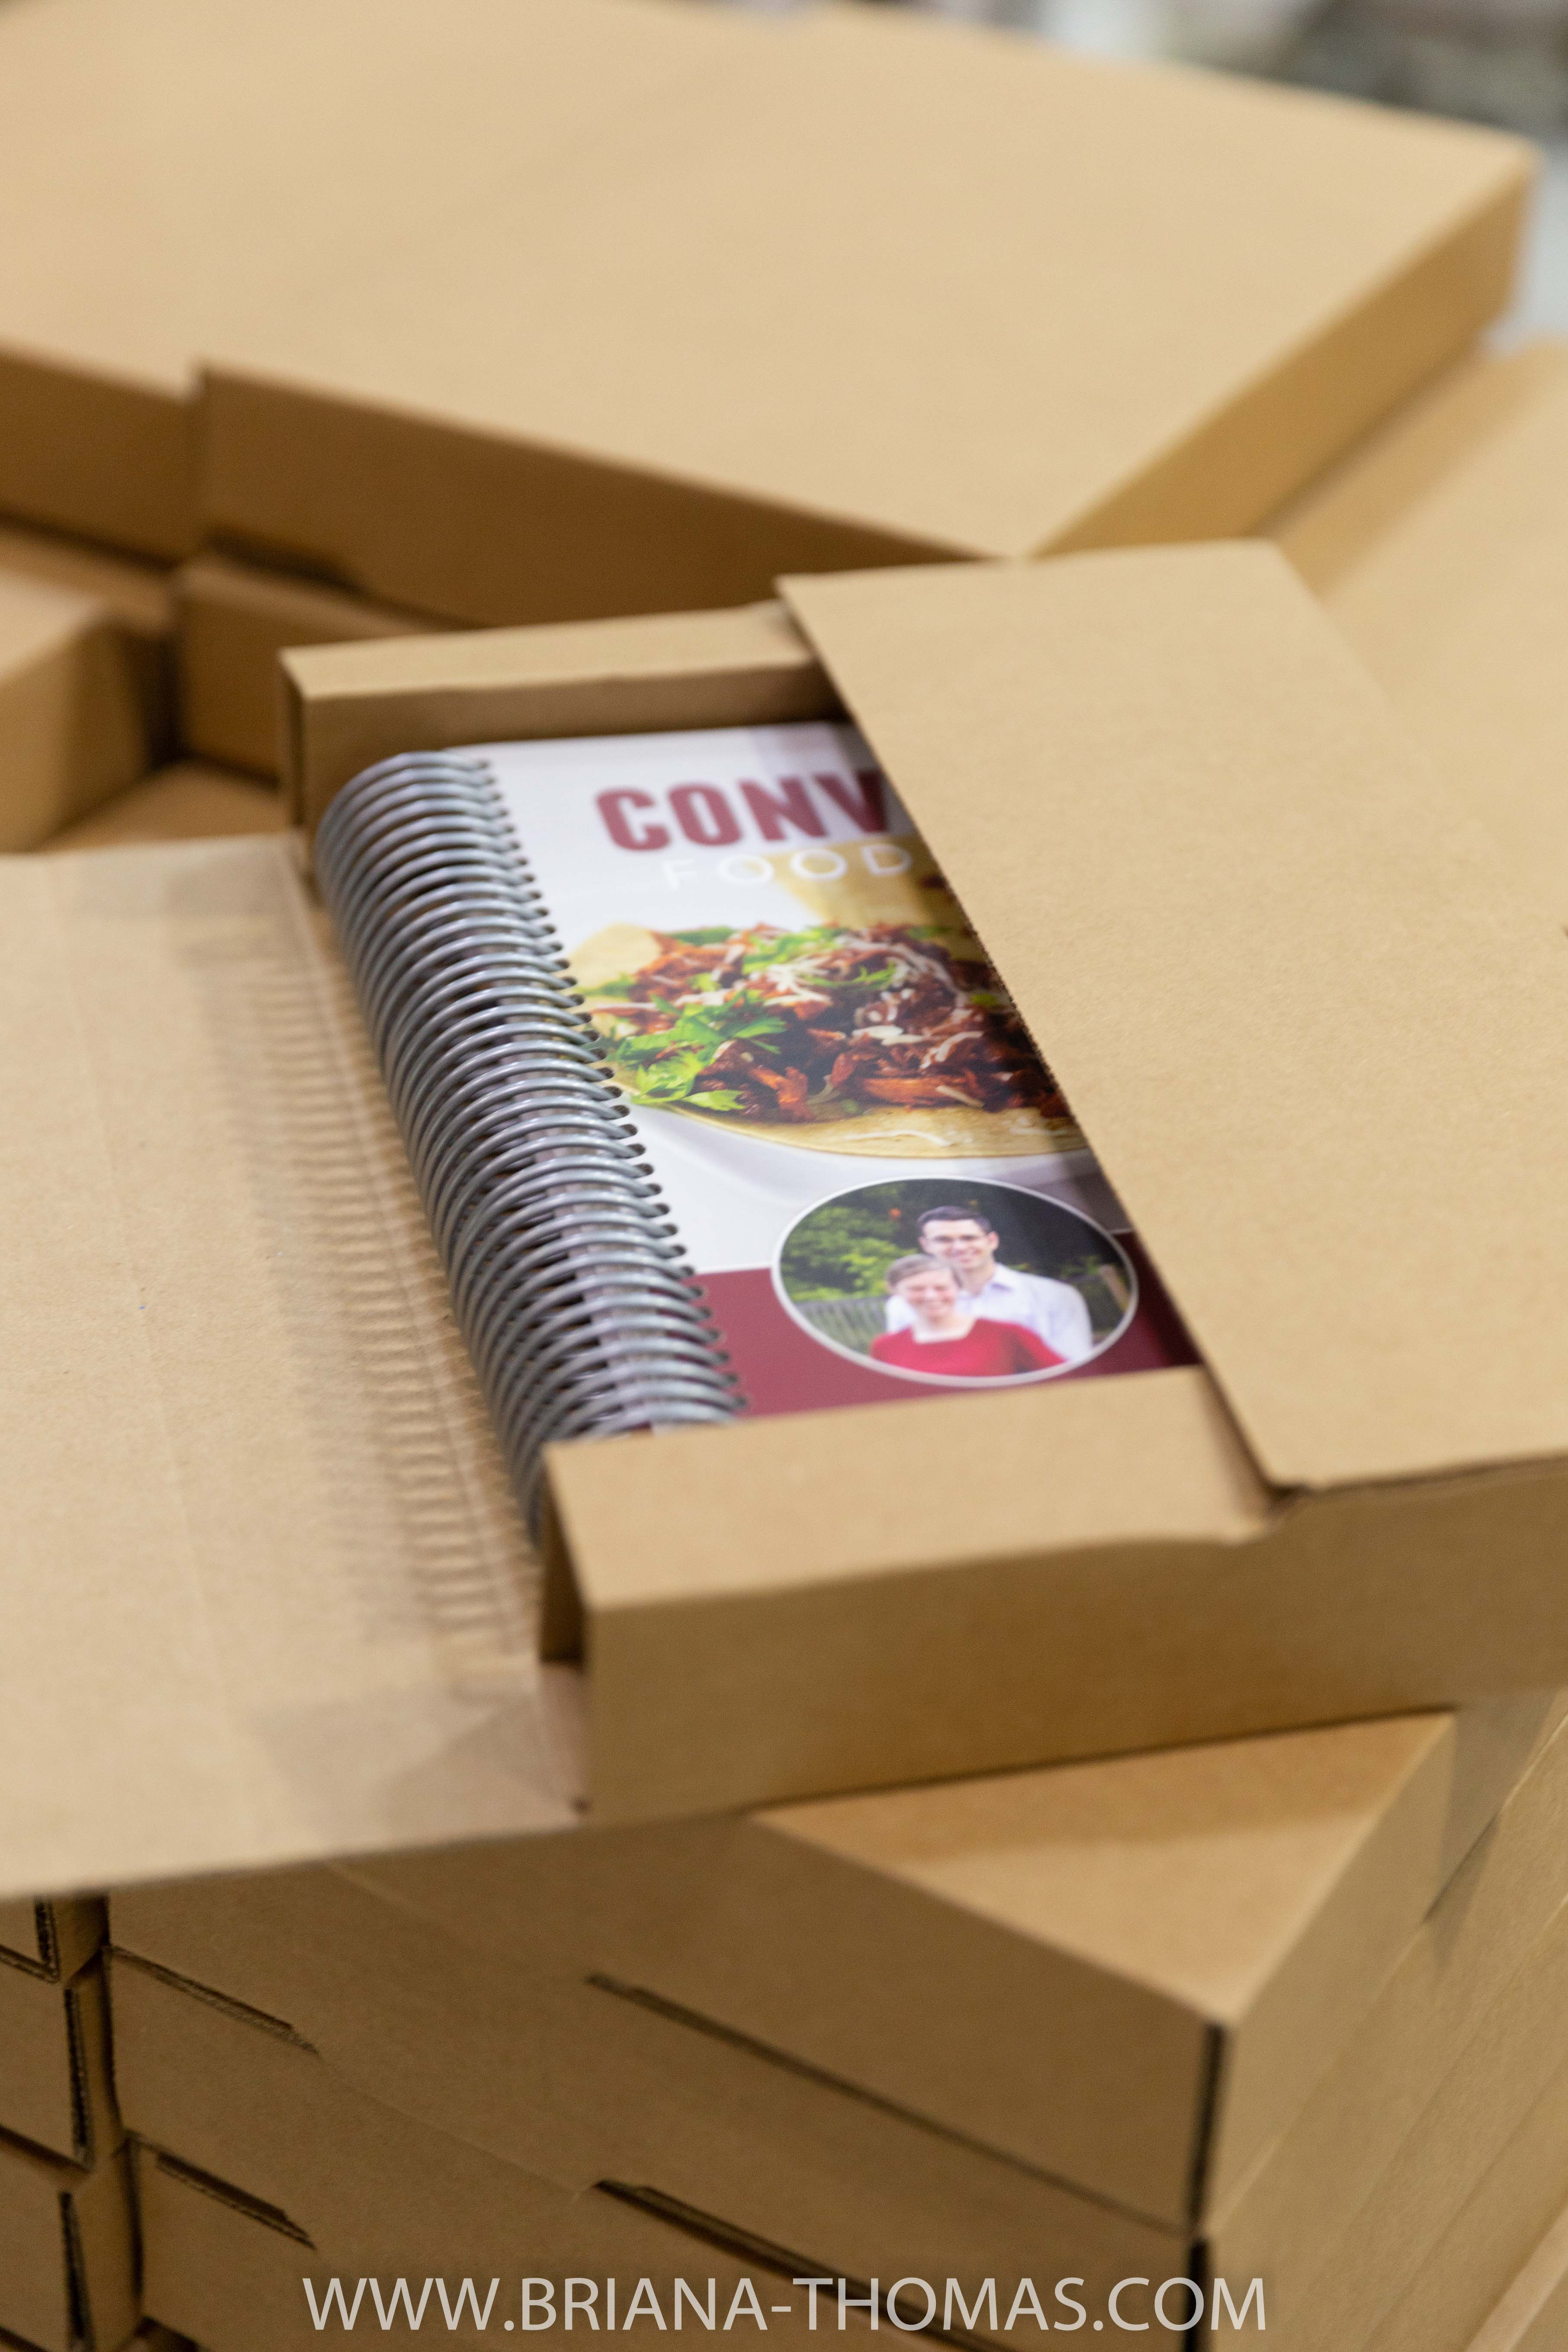 Convenient Food - a low-glycemic cookbook by Briana Thomas Burkholder